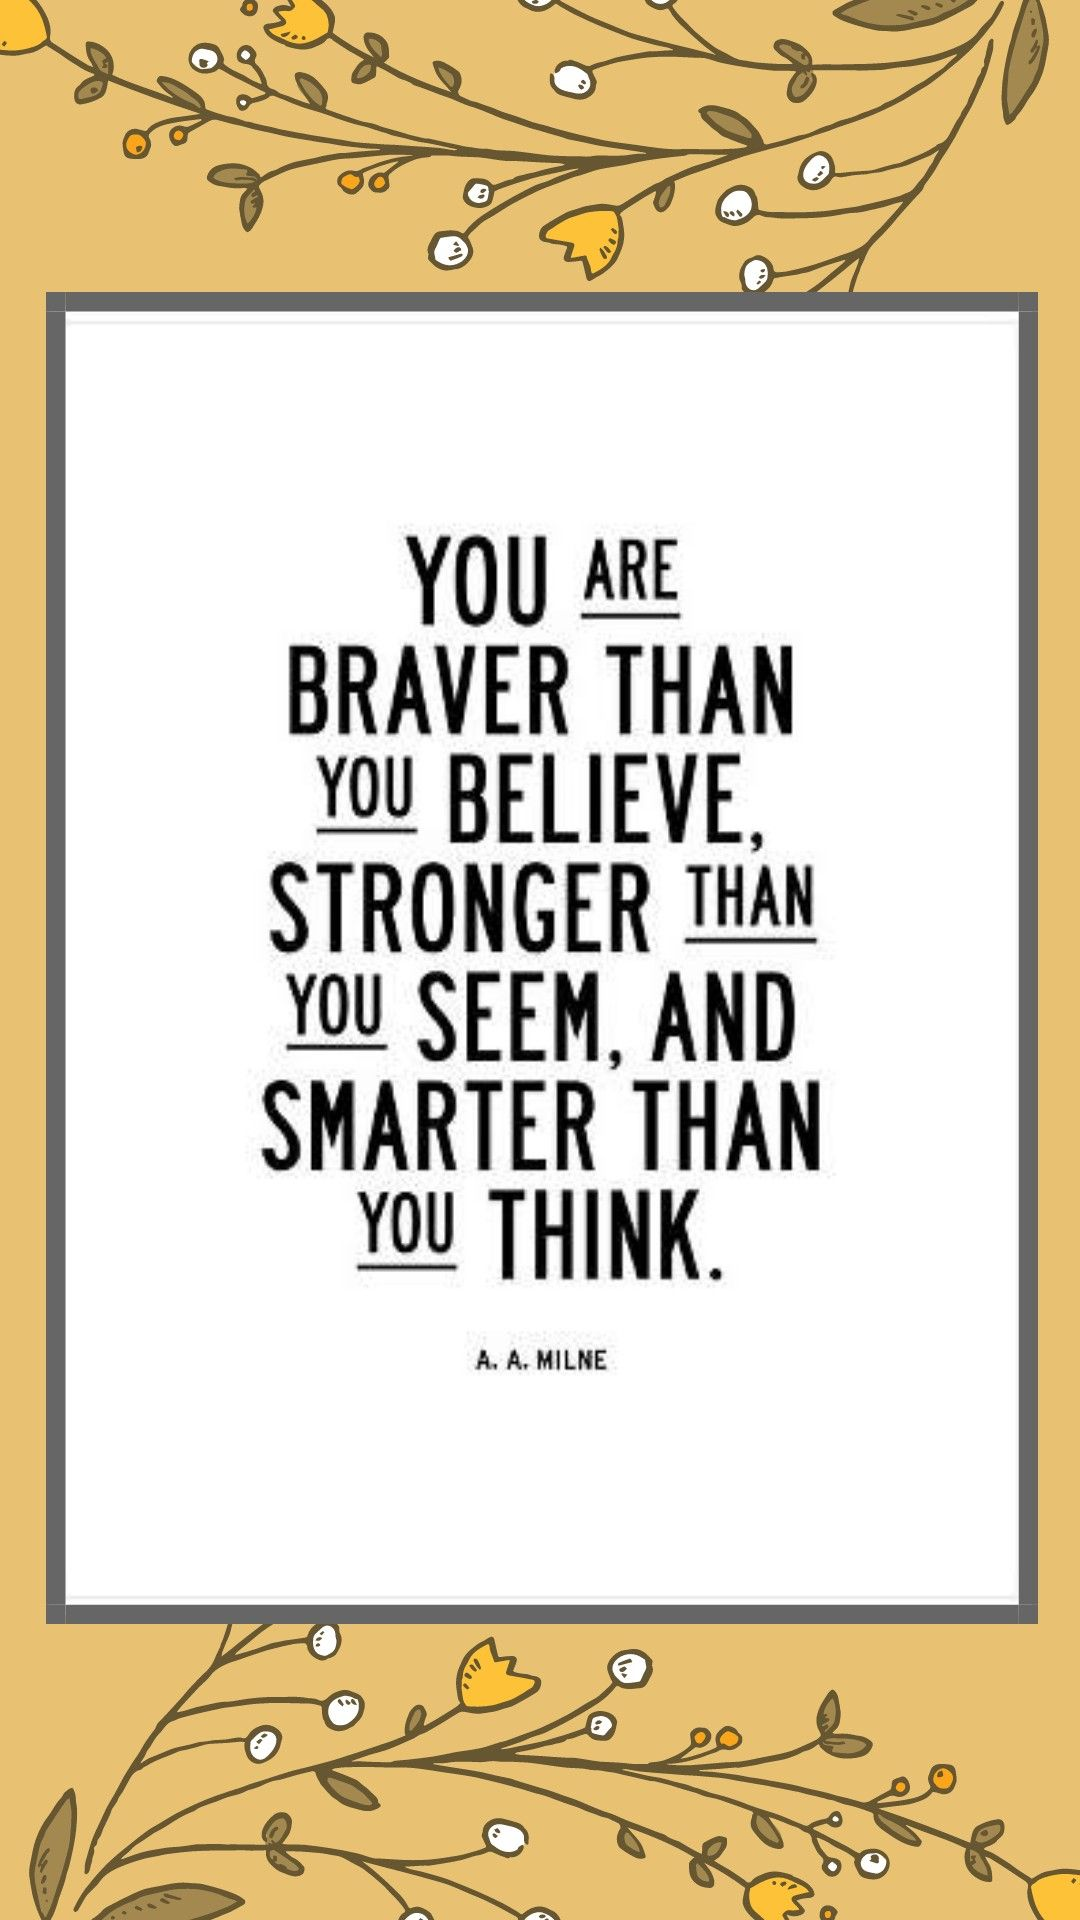 You Are Braver Than You Believe By Brett Wilson Is An Art Print